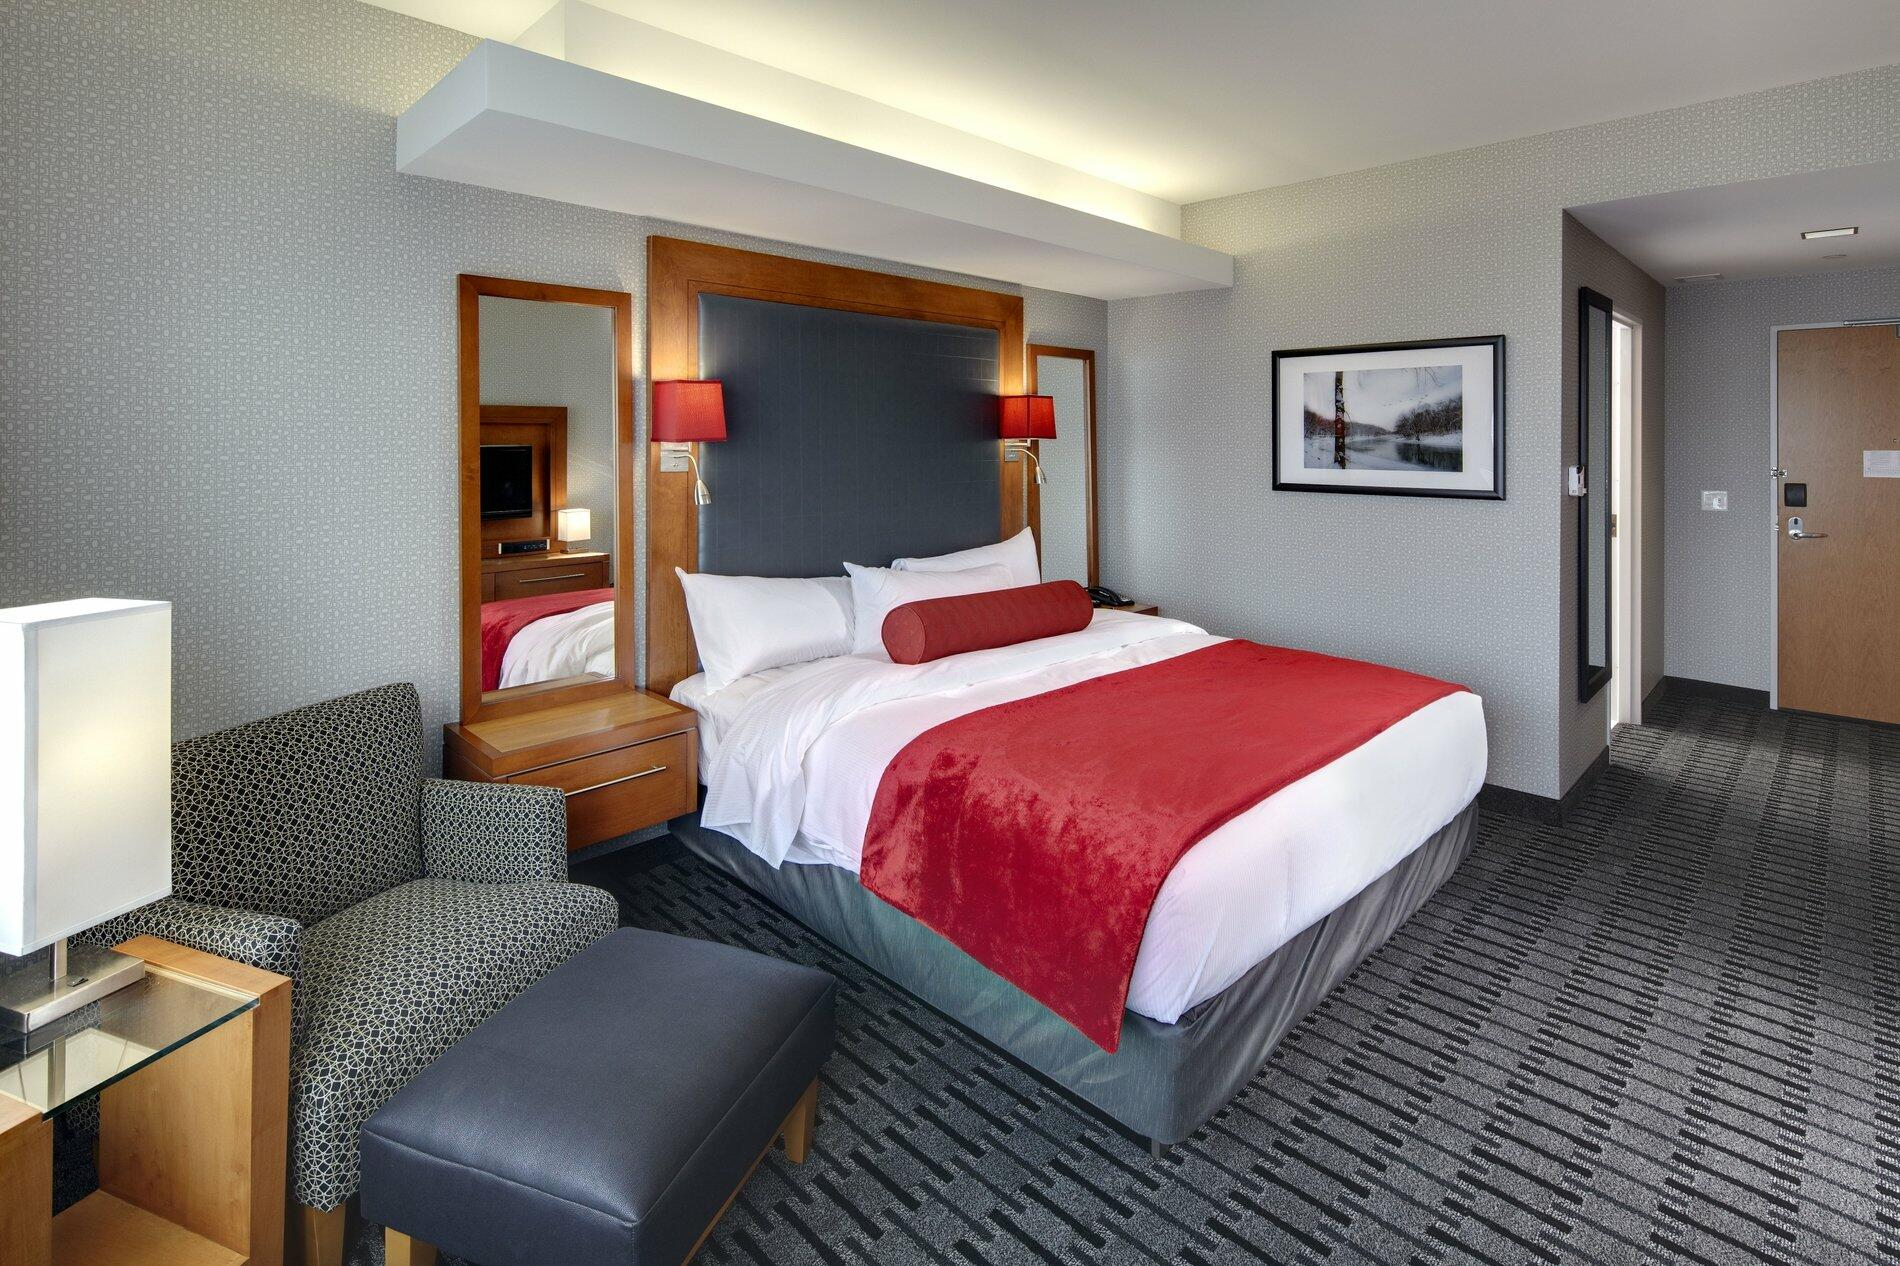 Large single bed room